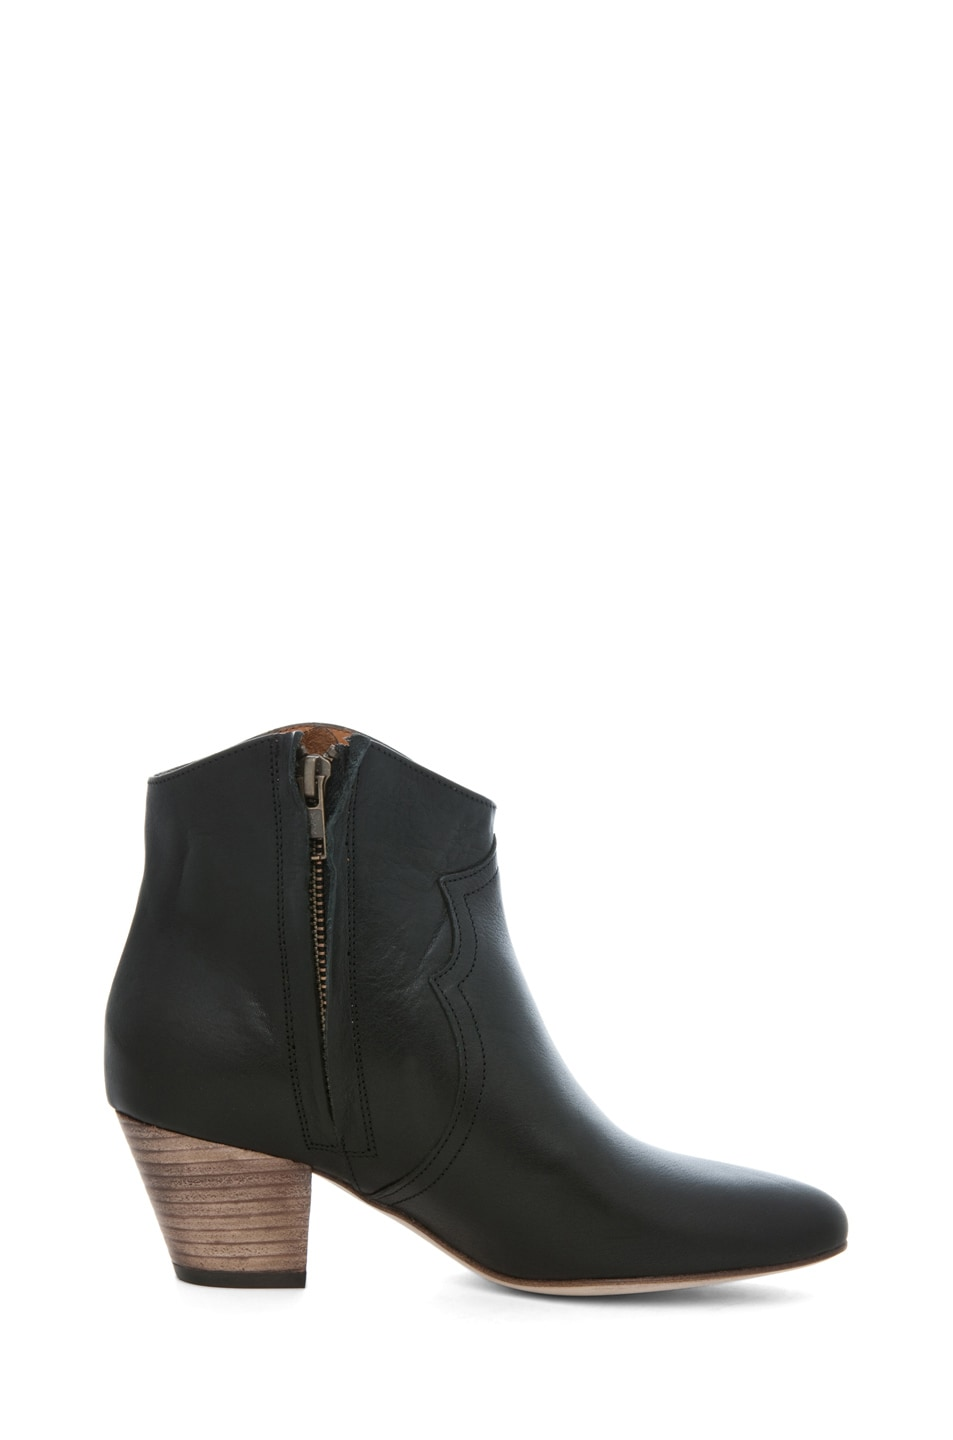 Image 5 of Isabel Marant Dicker Leather Bootie in Noir